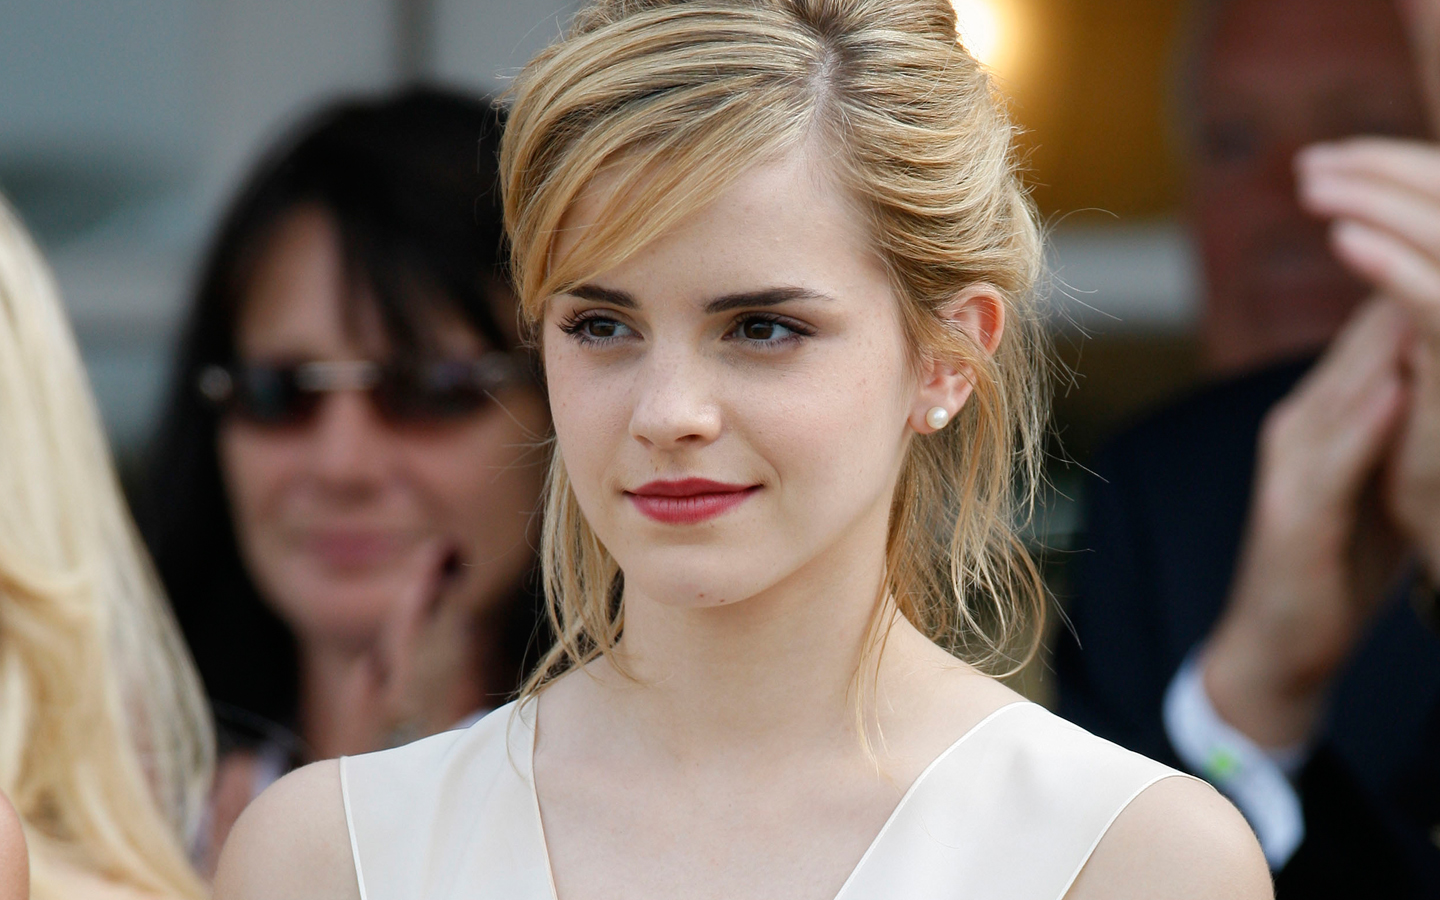 Can look Emma watson white dress upskirt completely